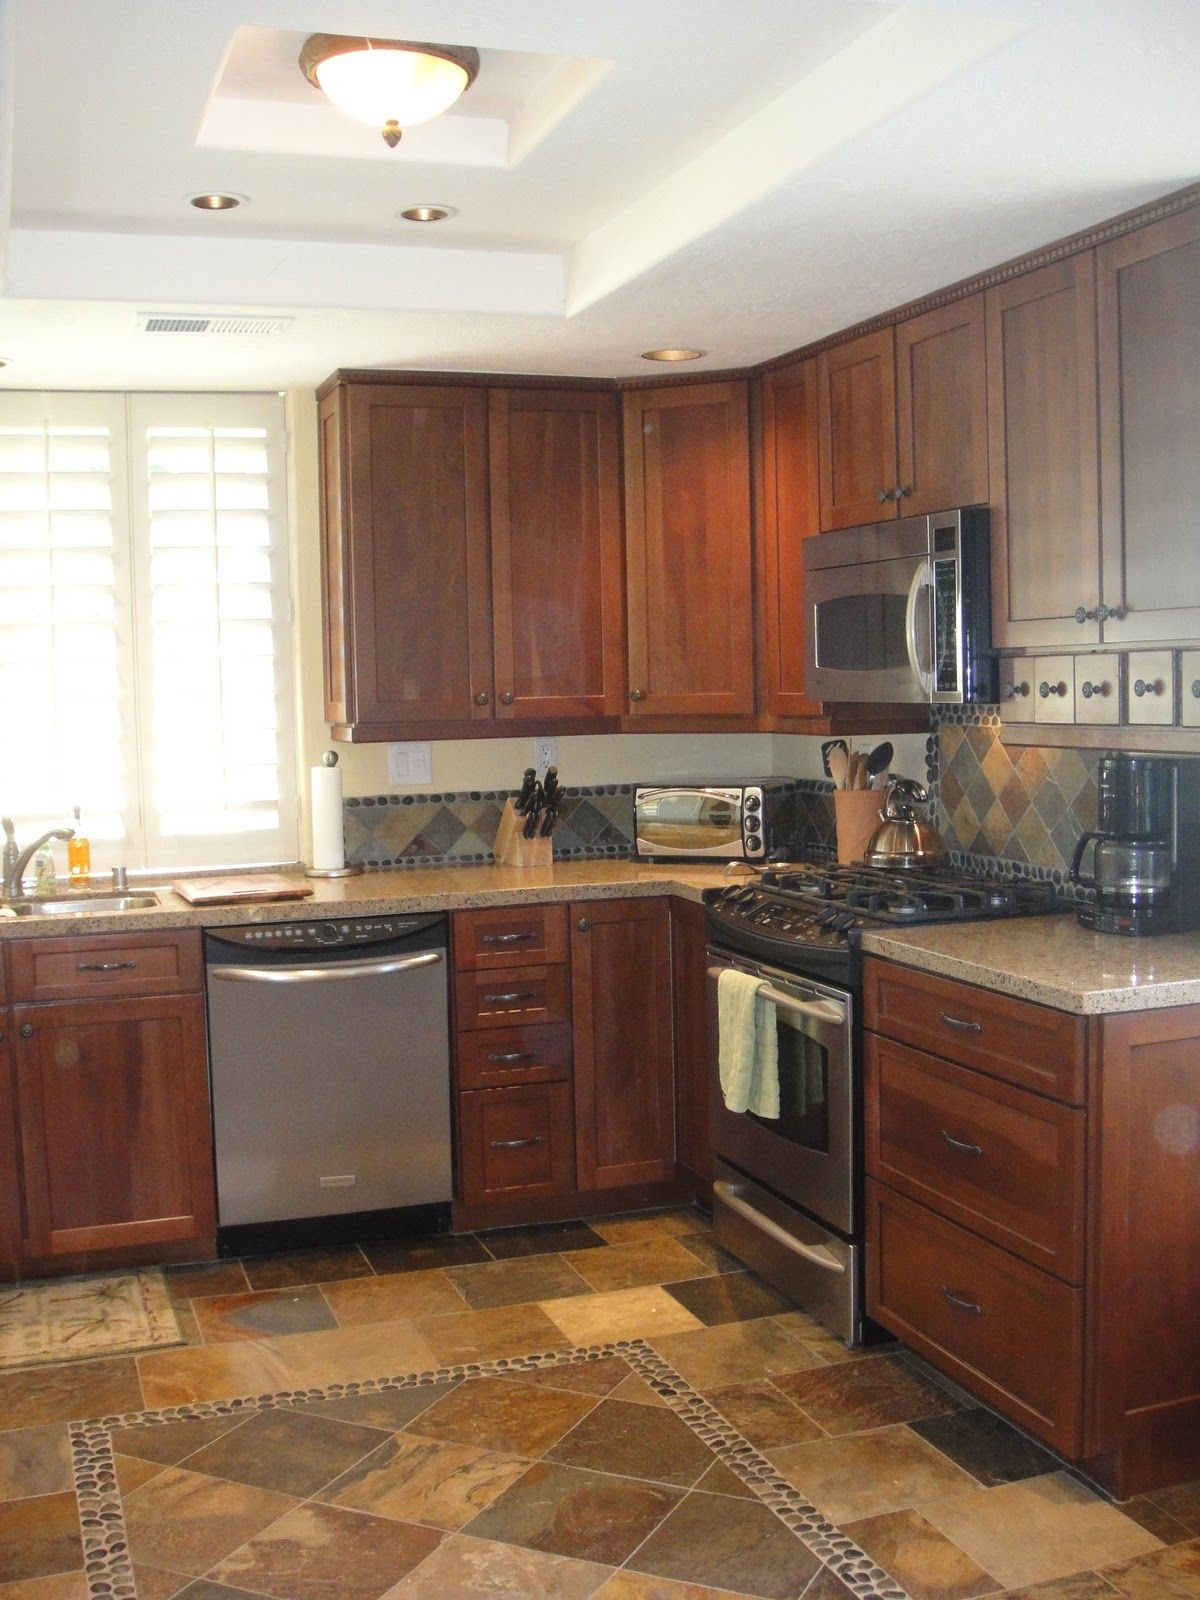 The Kitchen Is State Of The Art With Stainless Steel Appliances Granite Countertops